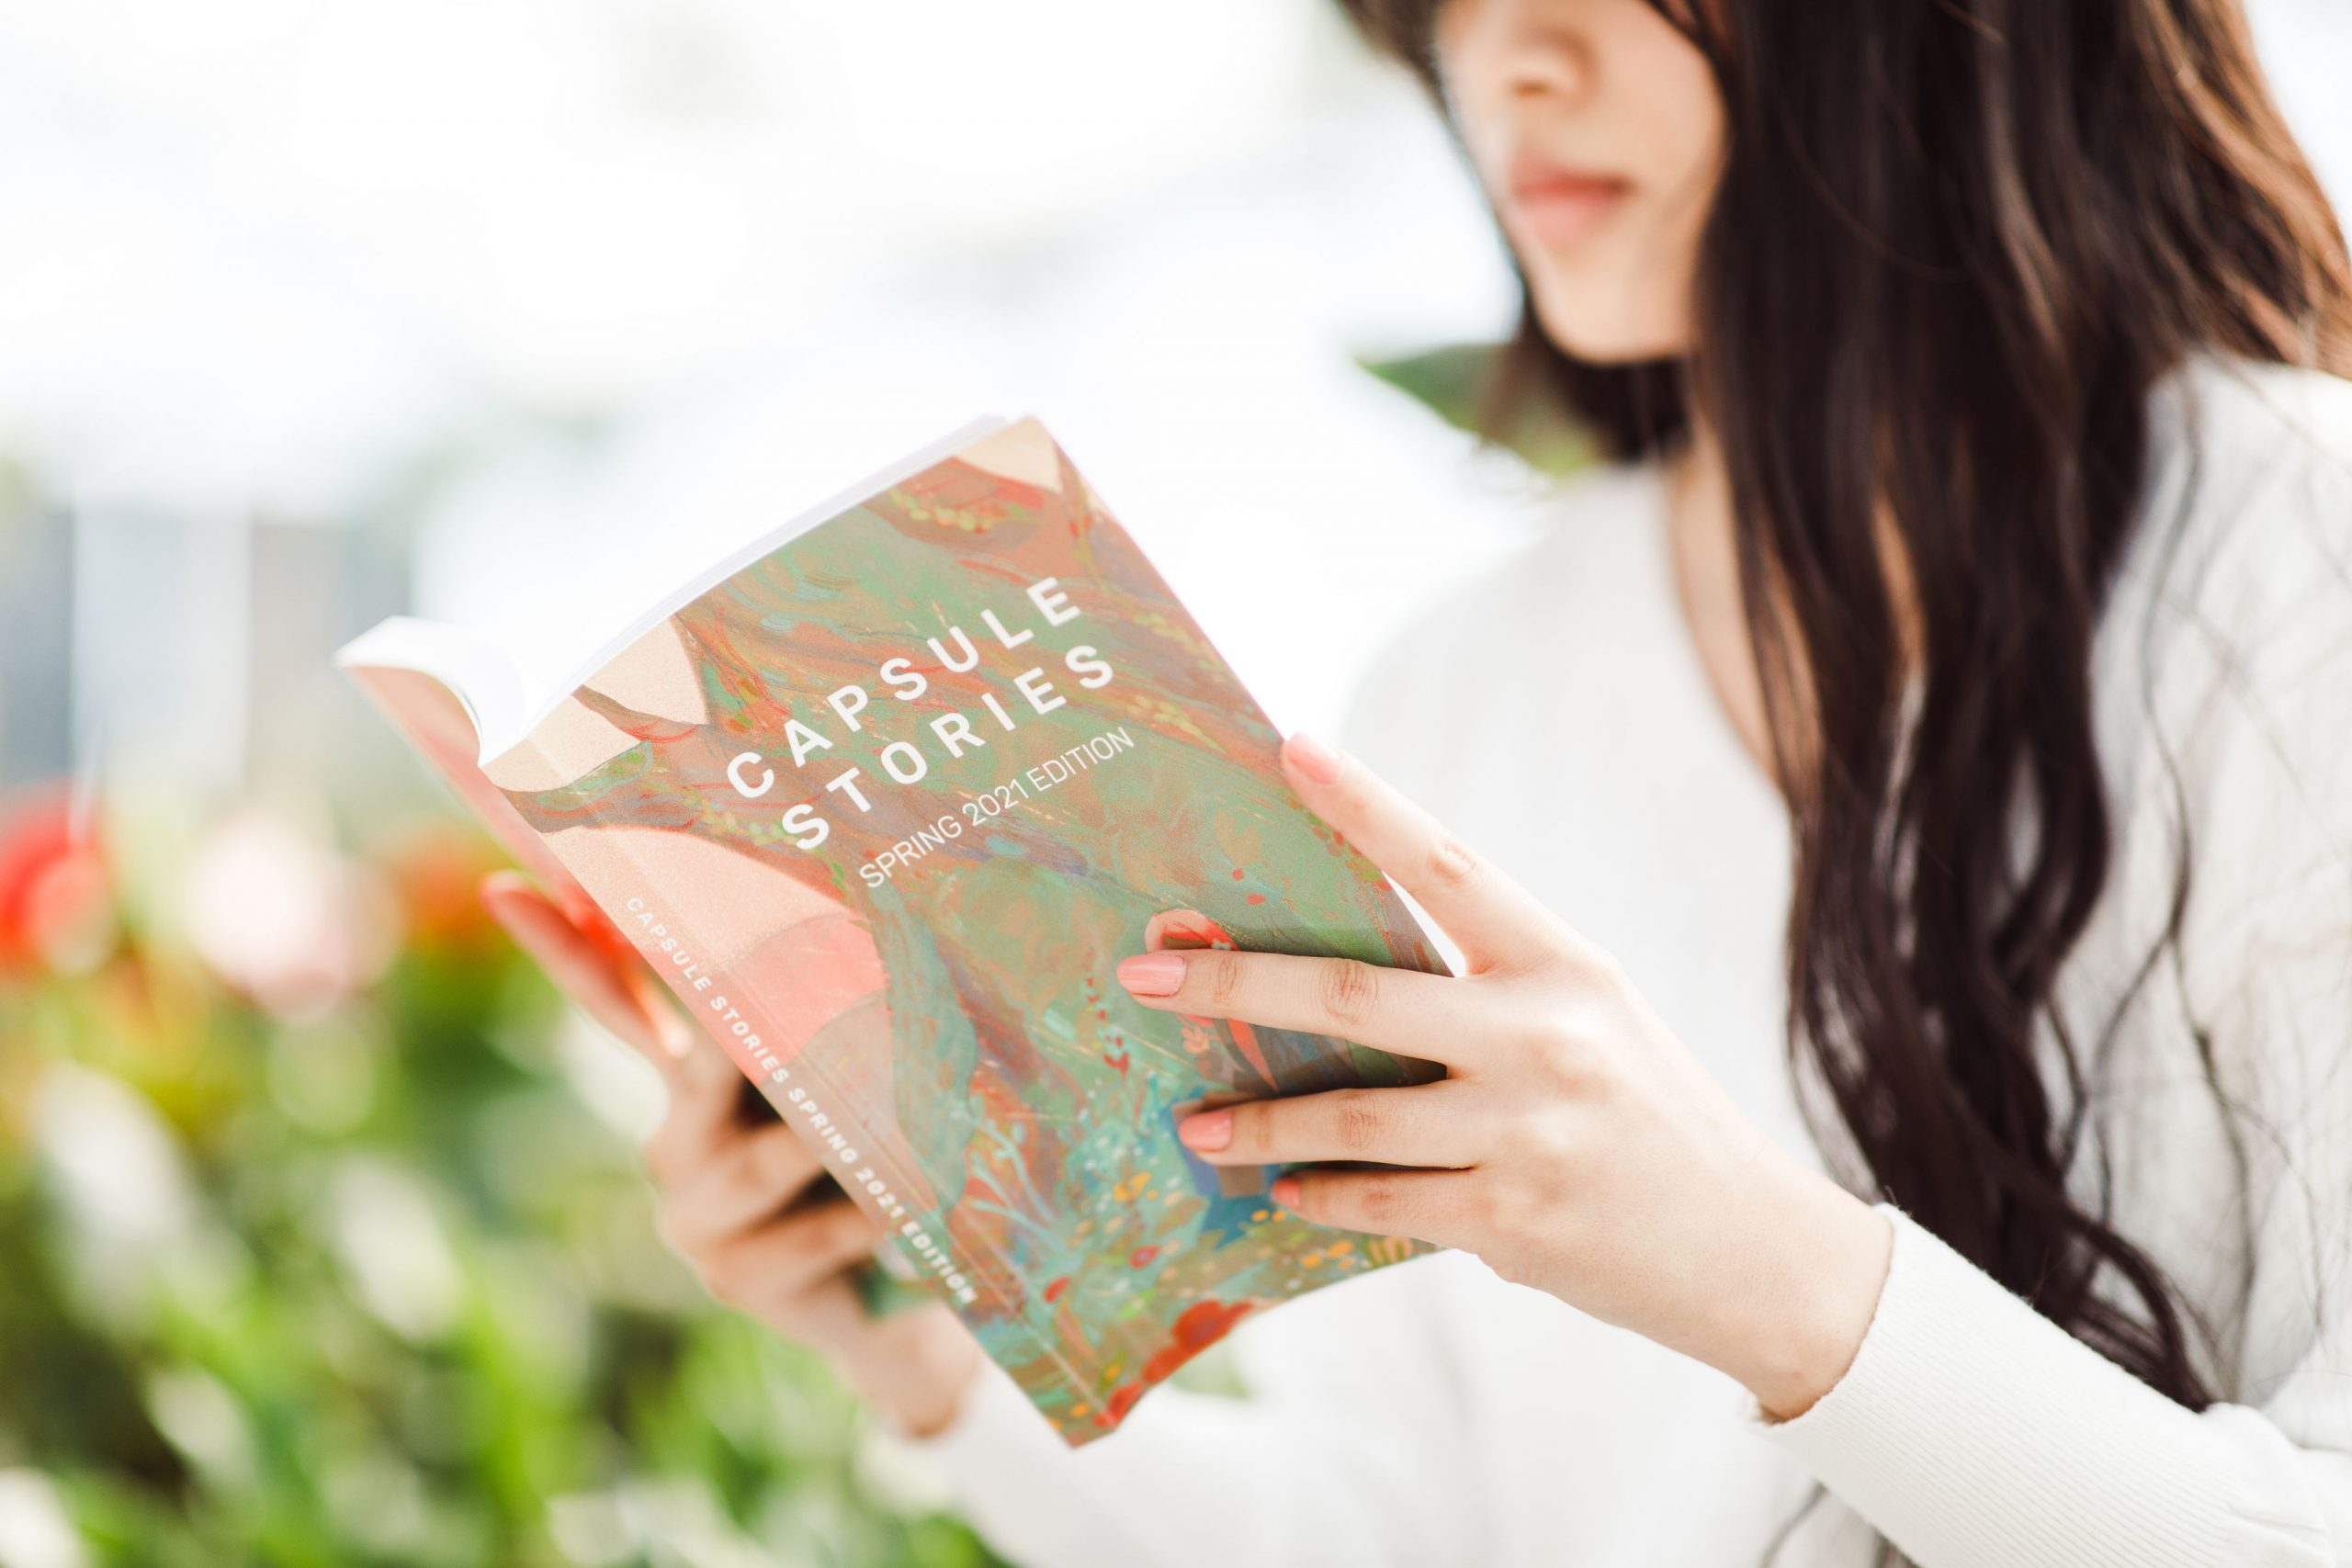 girl holding capsule stories spring 2021 edition